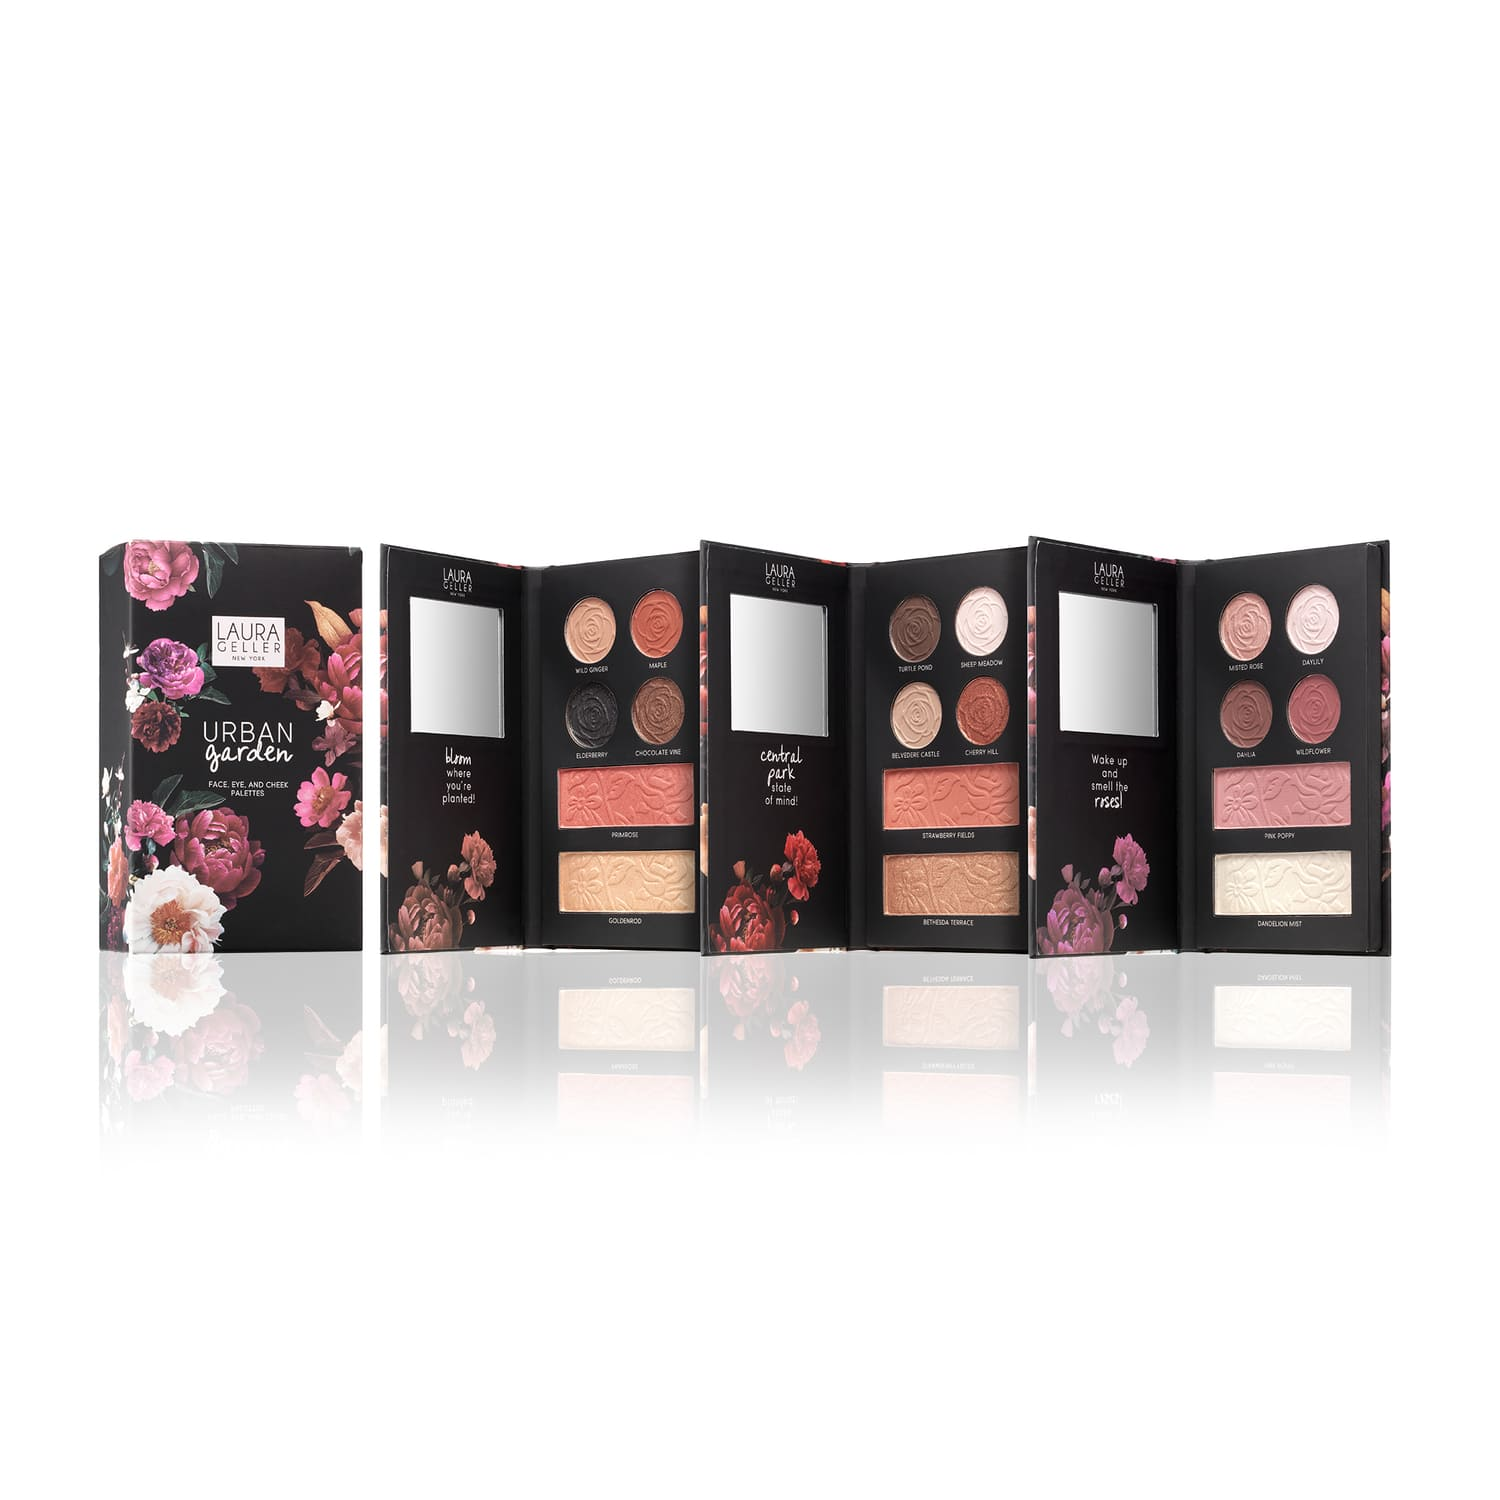 Urban Garden: 3 Face, Eye & Cheek Palettes